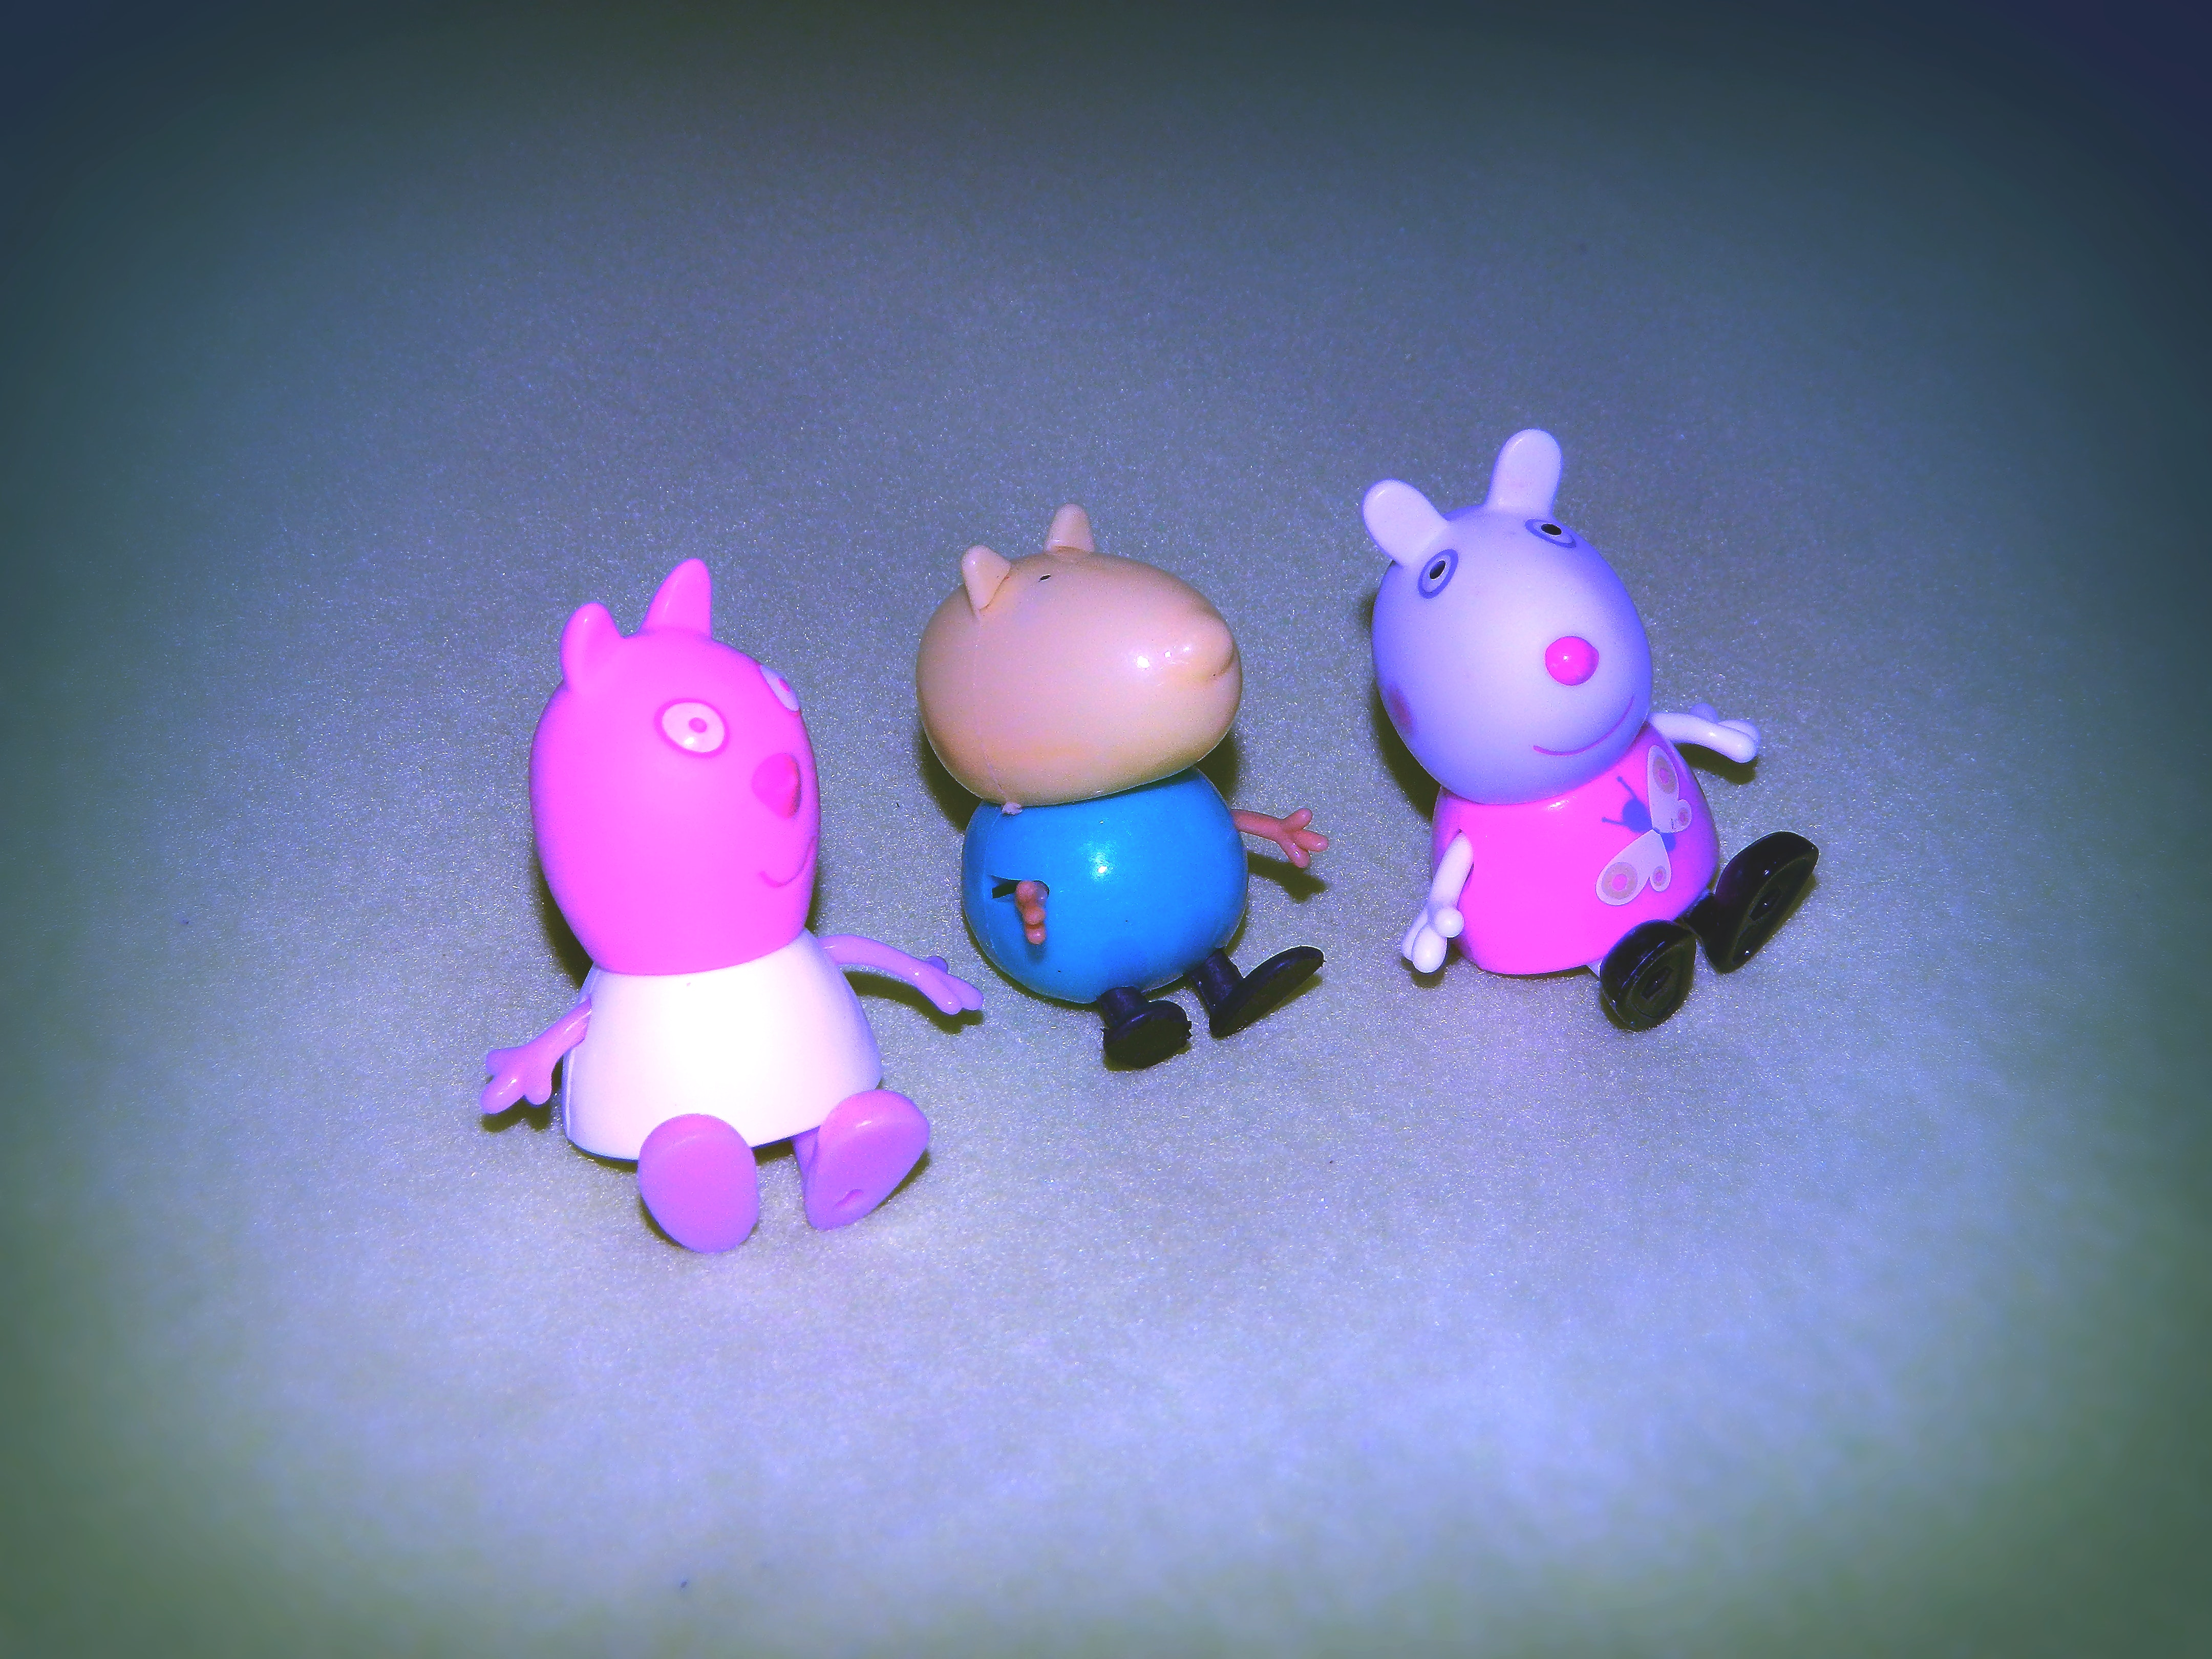 Free stock photo of children toys, peppa pig